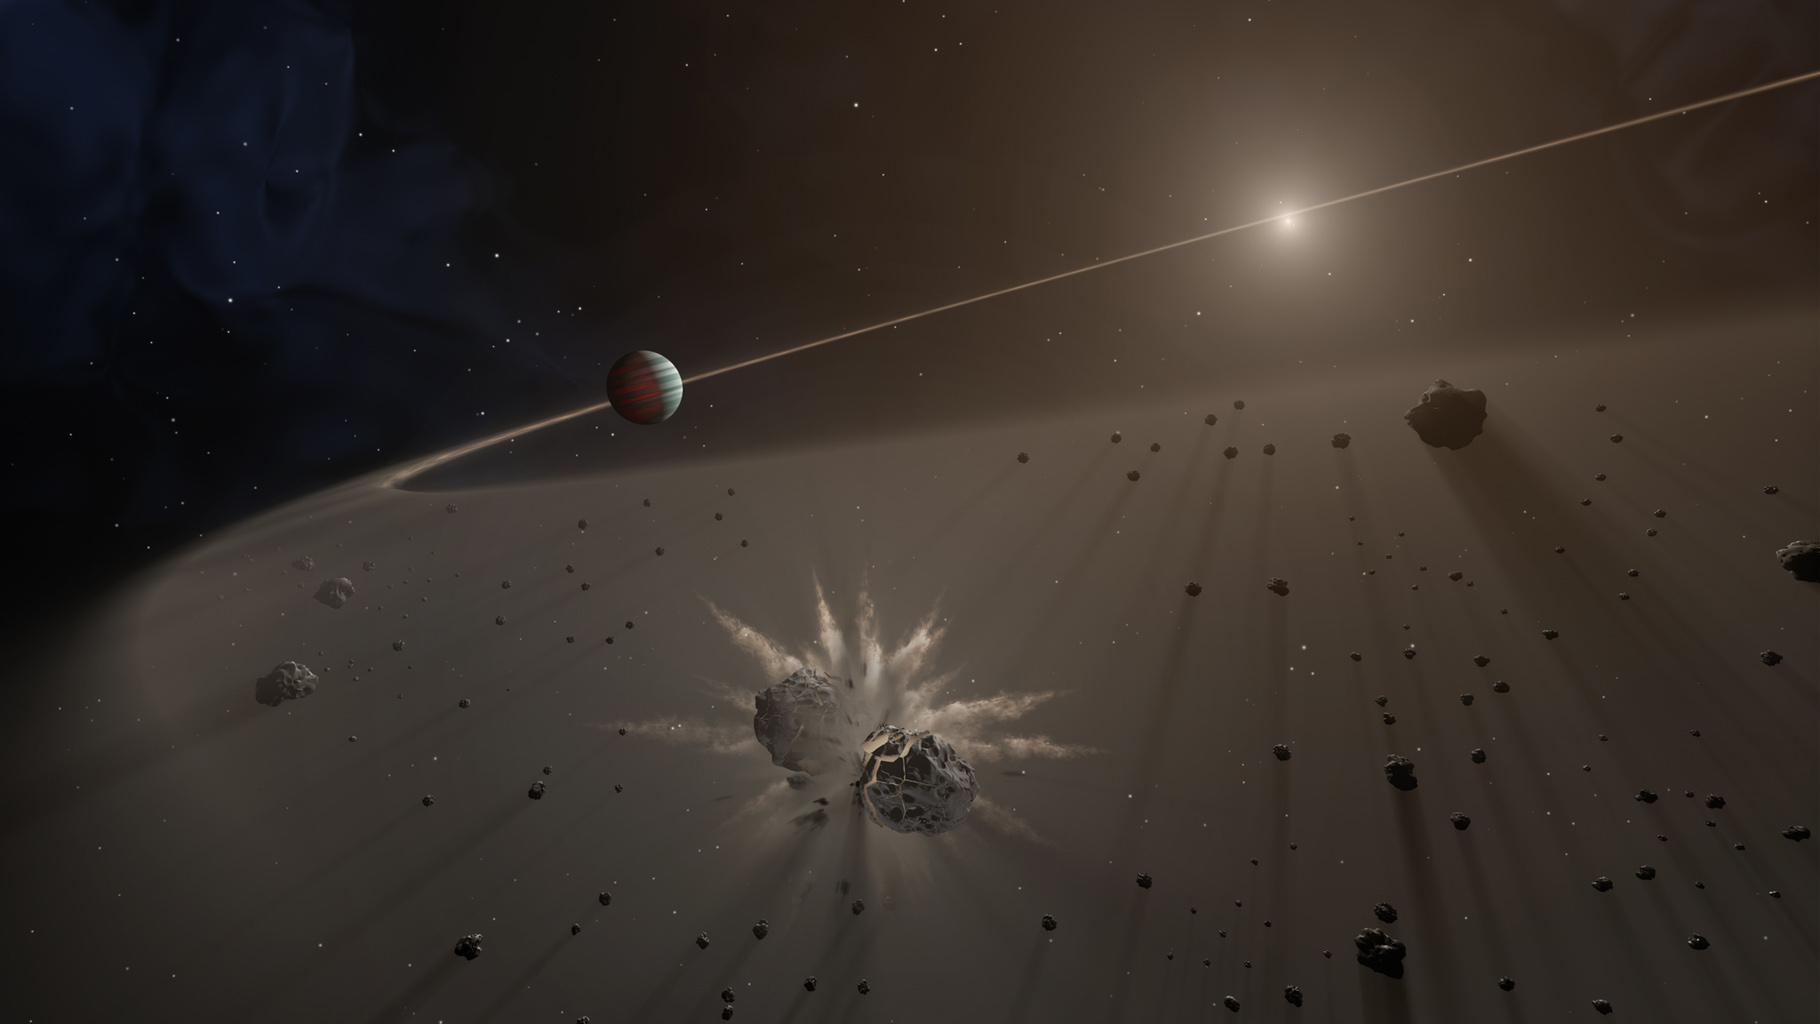 This artist's rendering shows a large exoplanet causing small bodies to collide in a disk of dust.